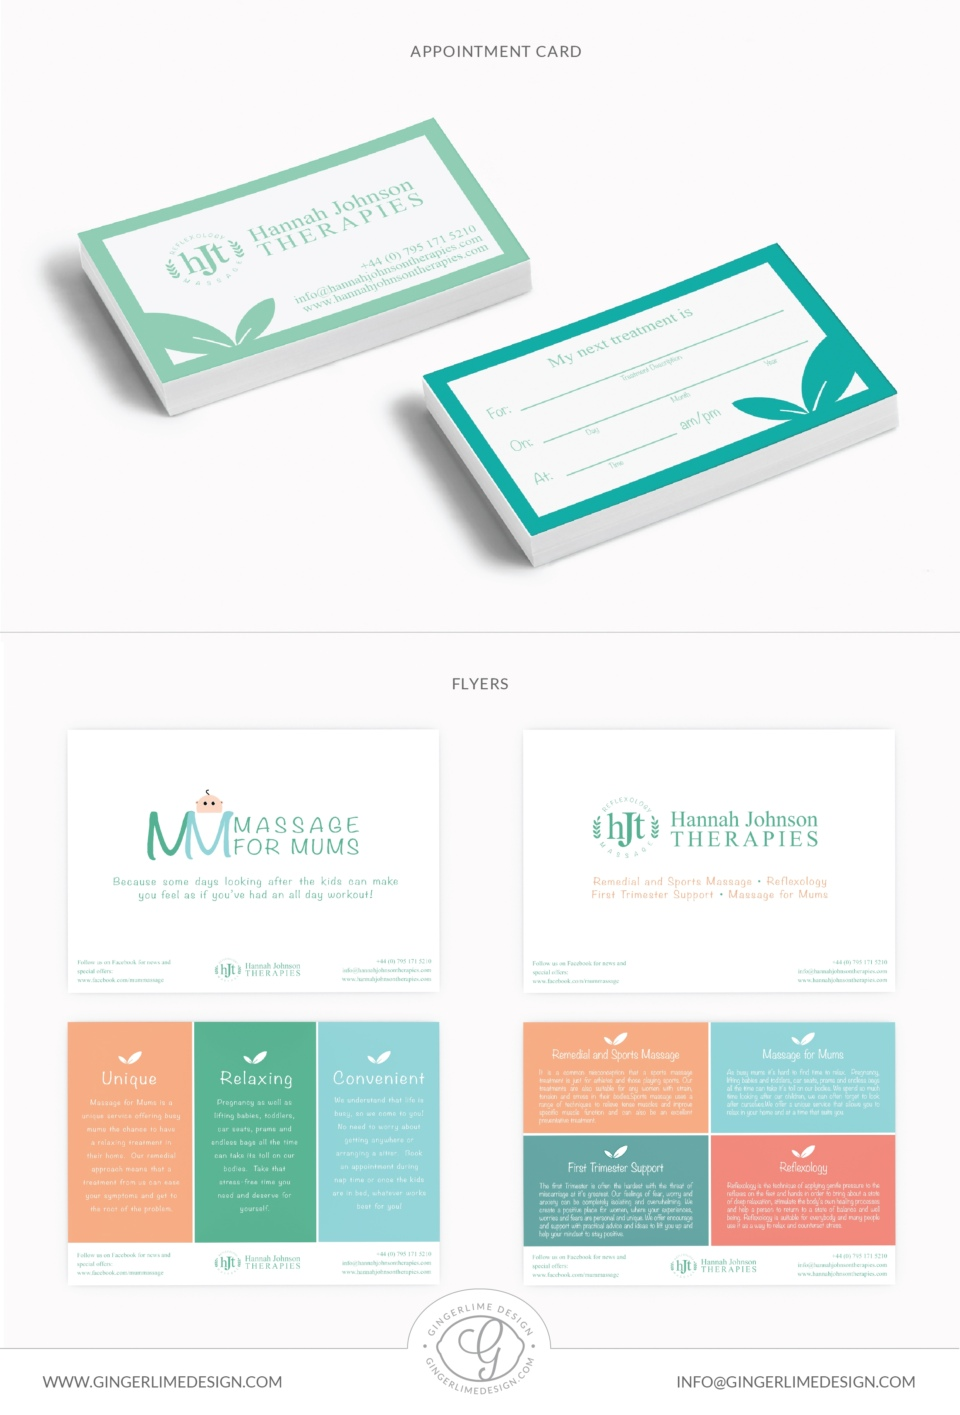 Hannah Johnson Therapies Branding by Gingerlime Design